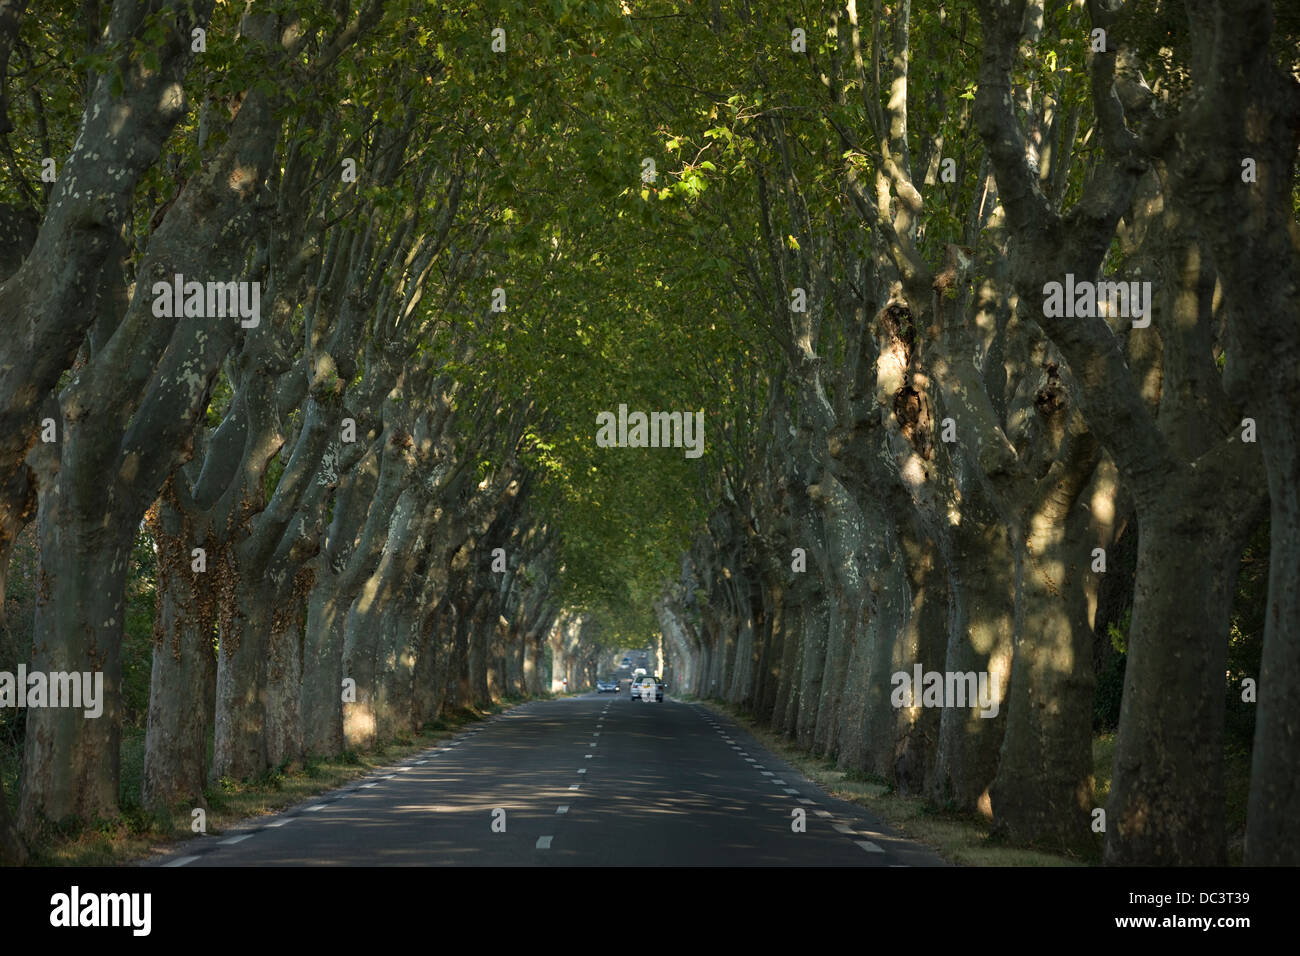 ROUTE D99 SYCAMORE TREE LINED ROAD SAINT REMY PROVENCE FRANCE Stock Photo